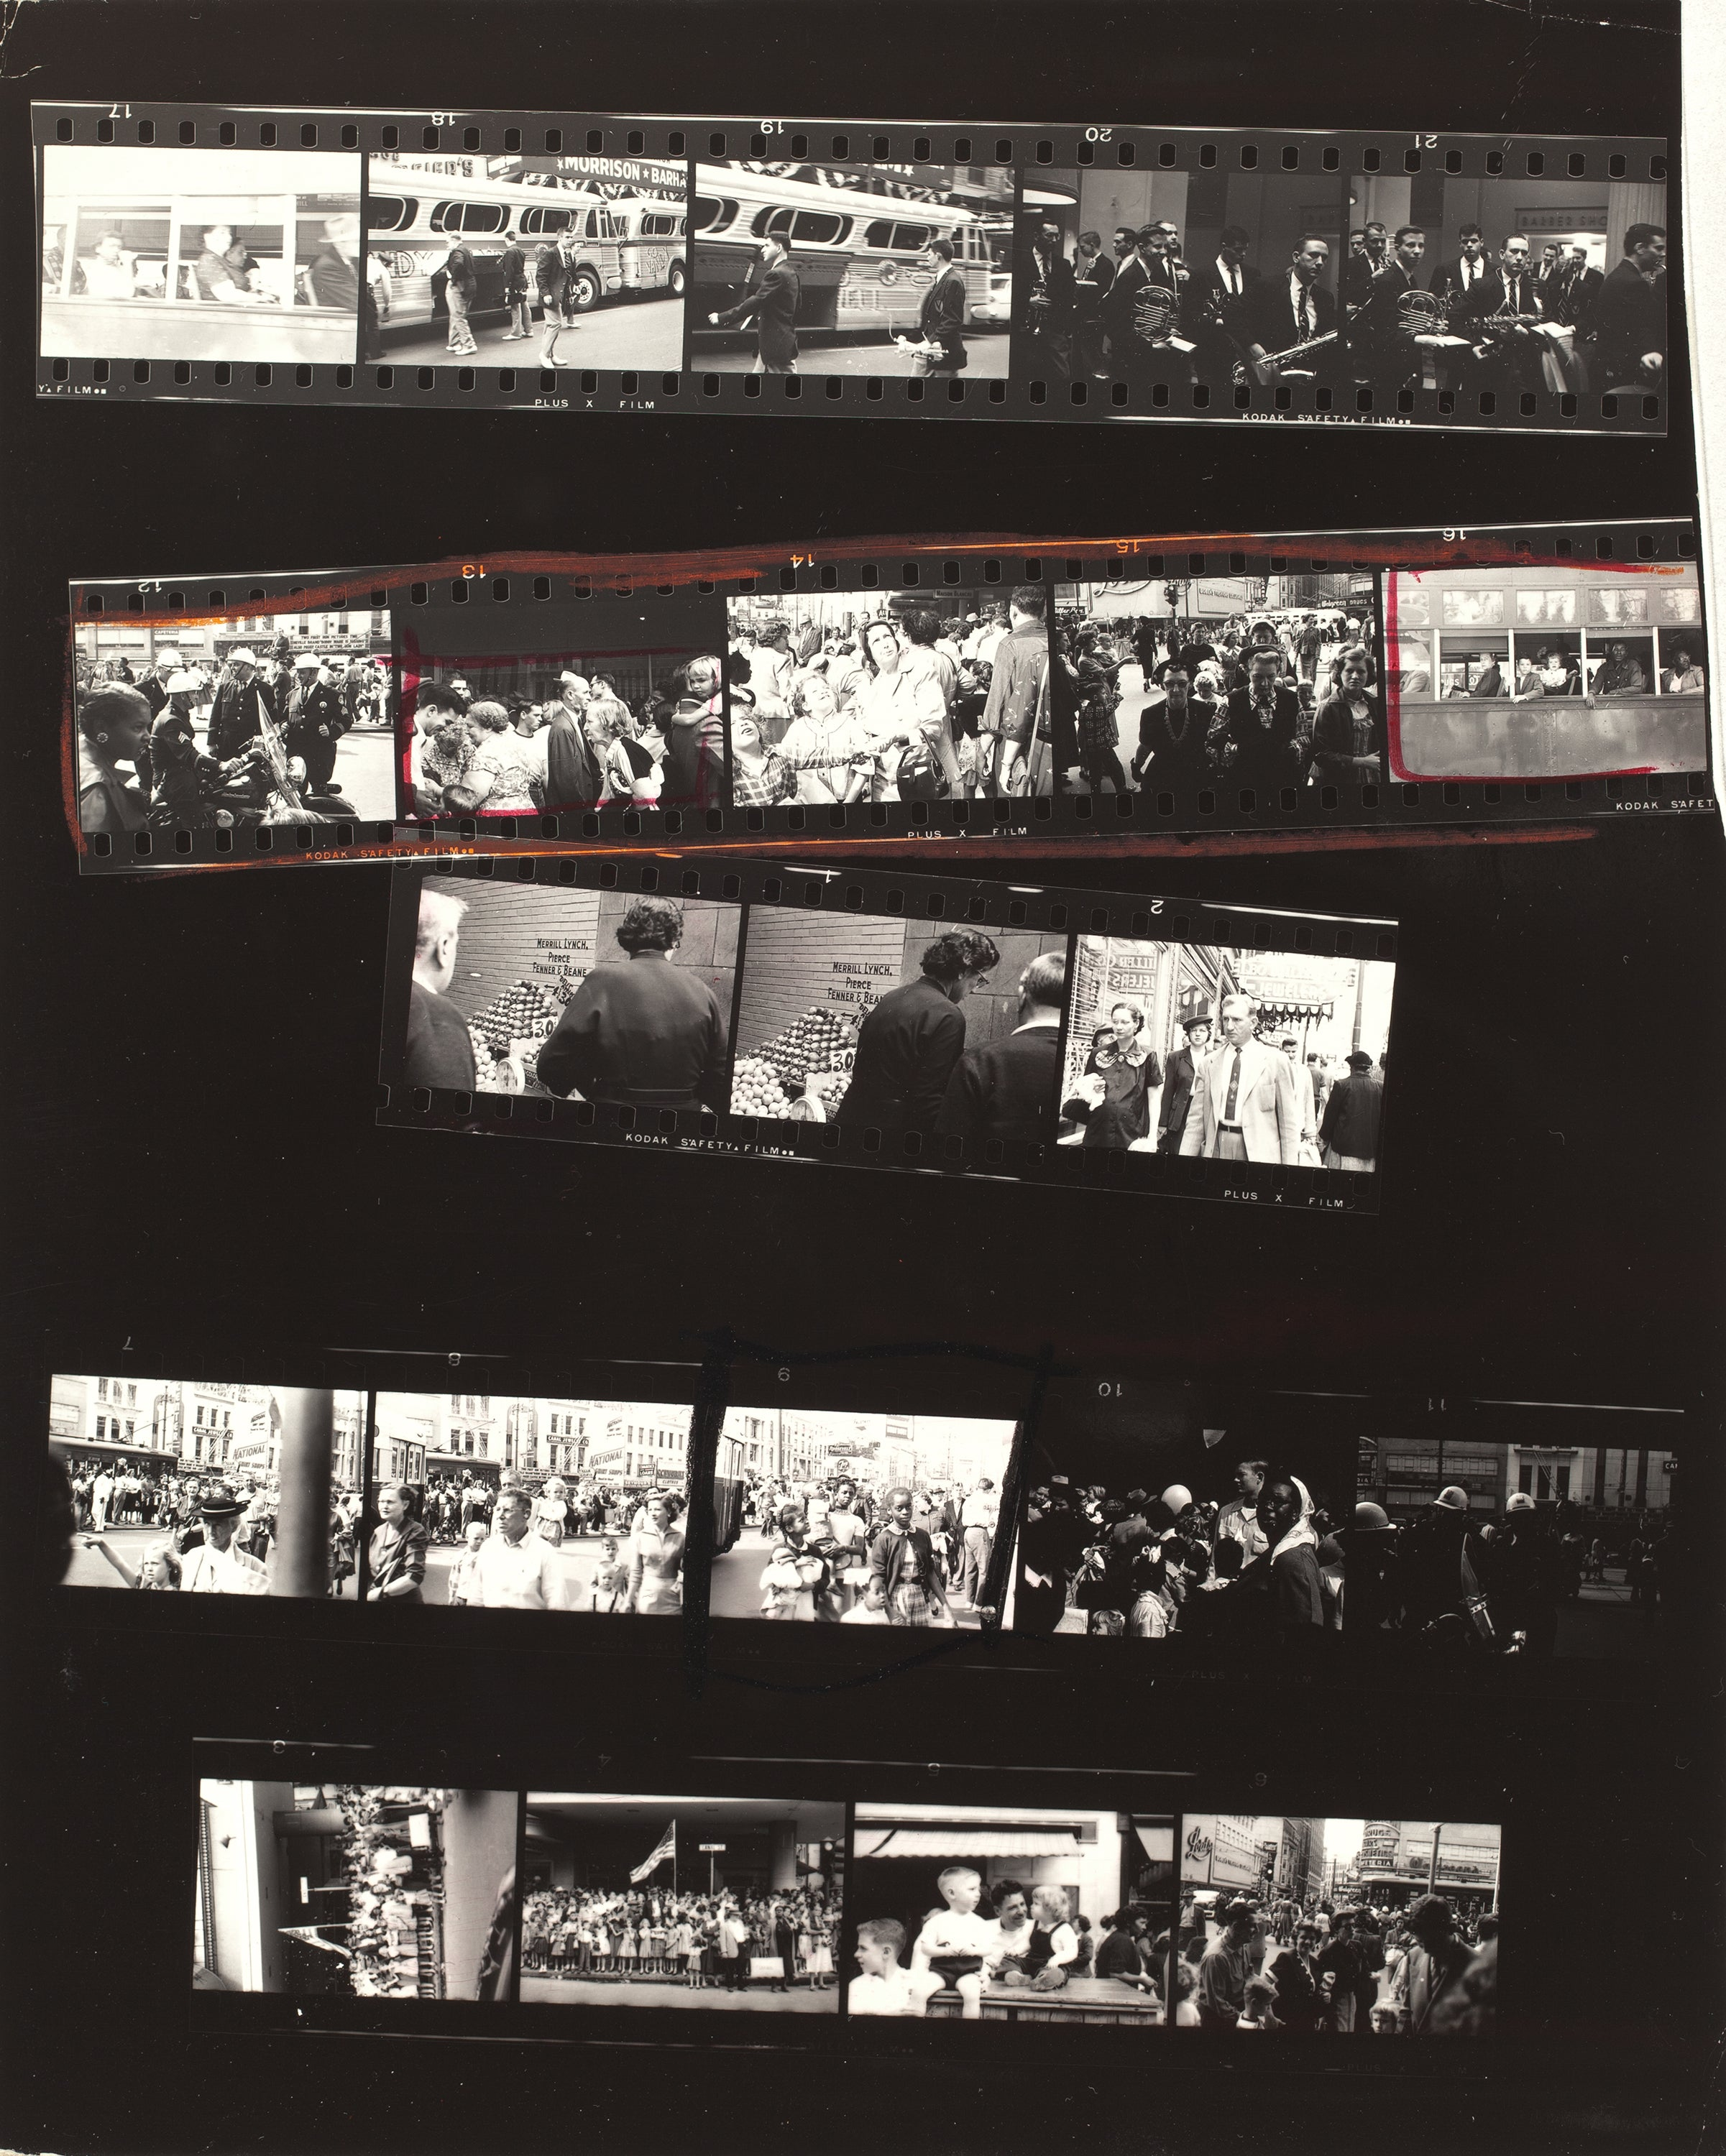 Sift Through Hundreds of Images by Legendary Photographer Robert Frank